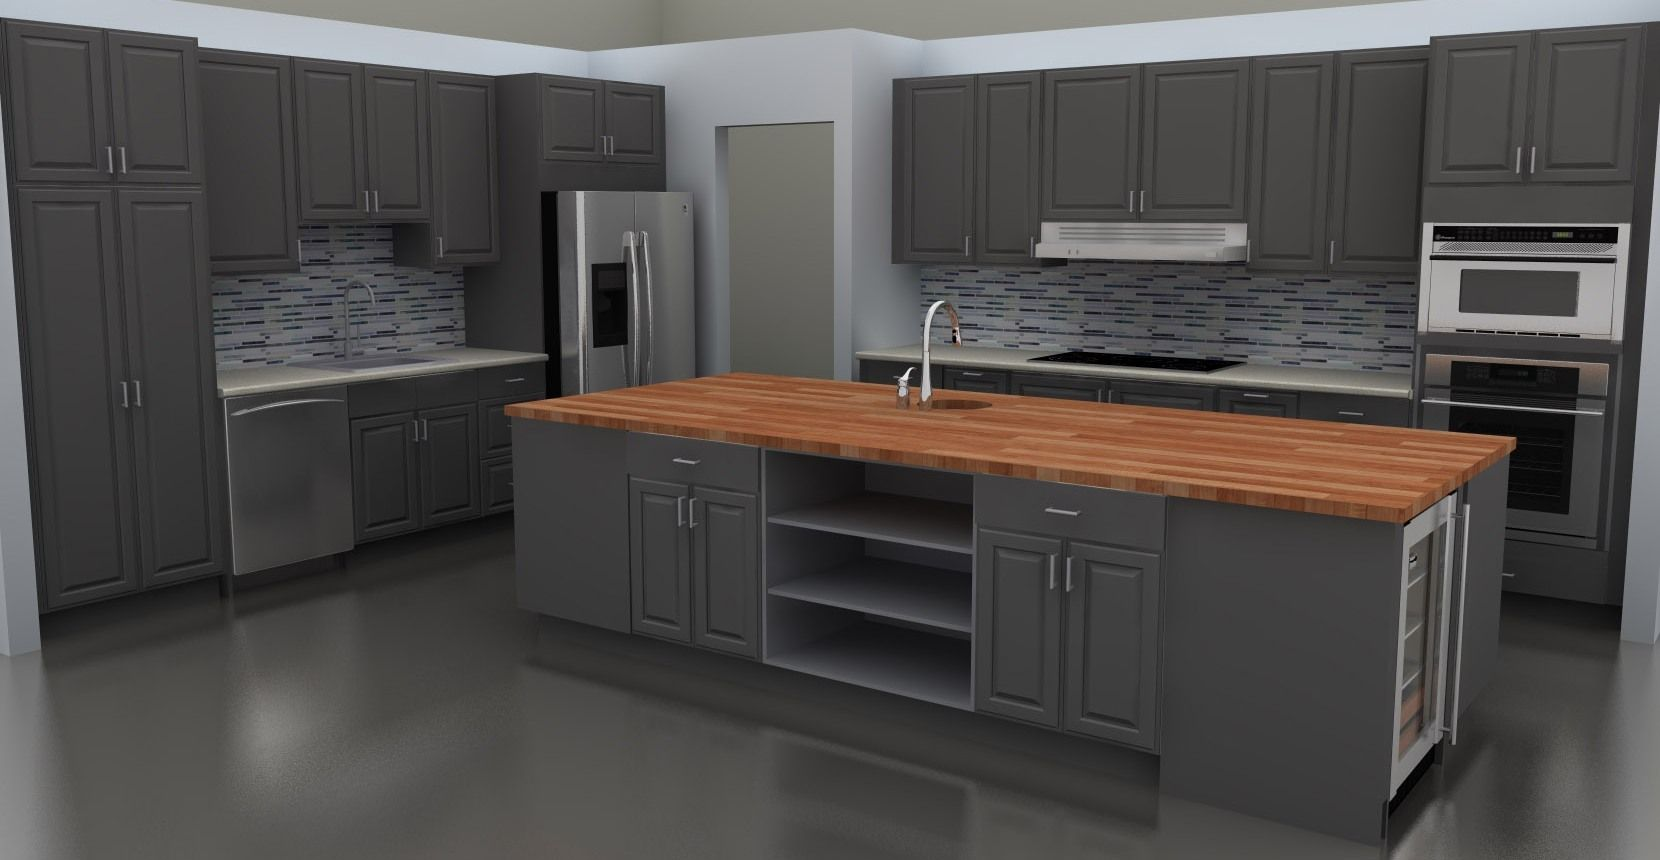 The decent styles of the retro ikea kitchen cabinets gray for Kitchen cabinets ikea